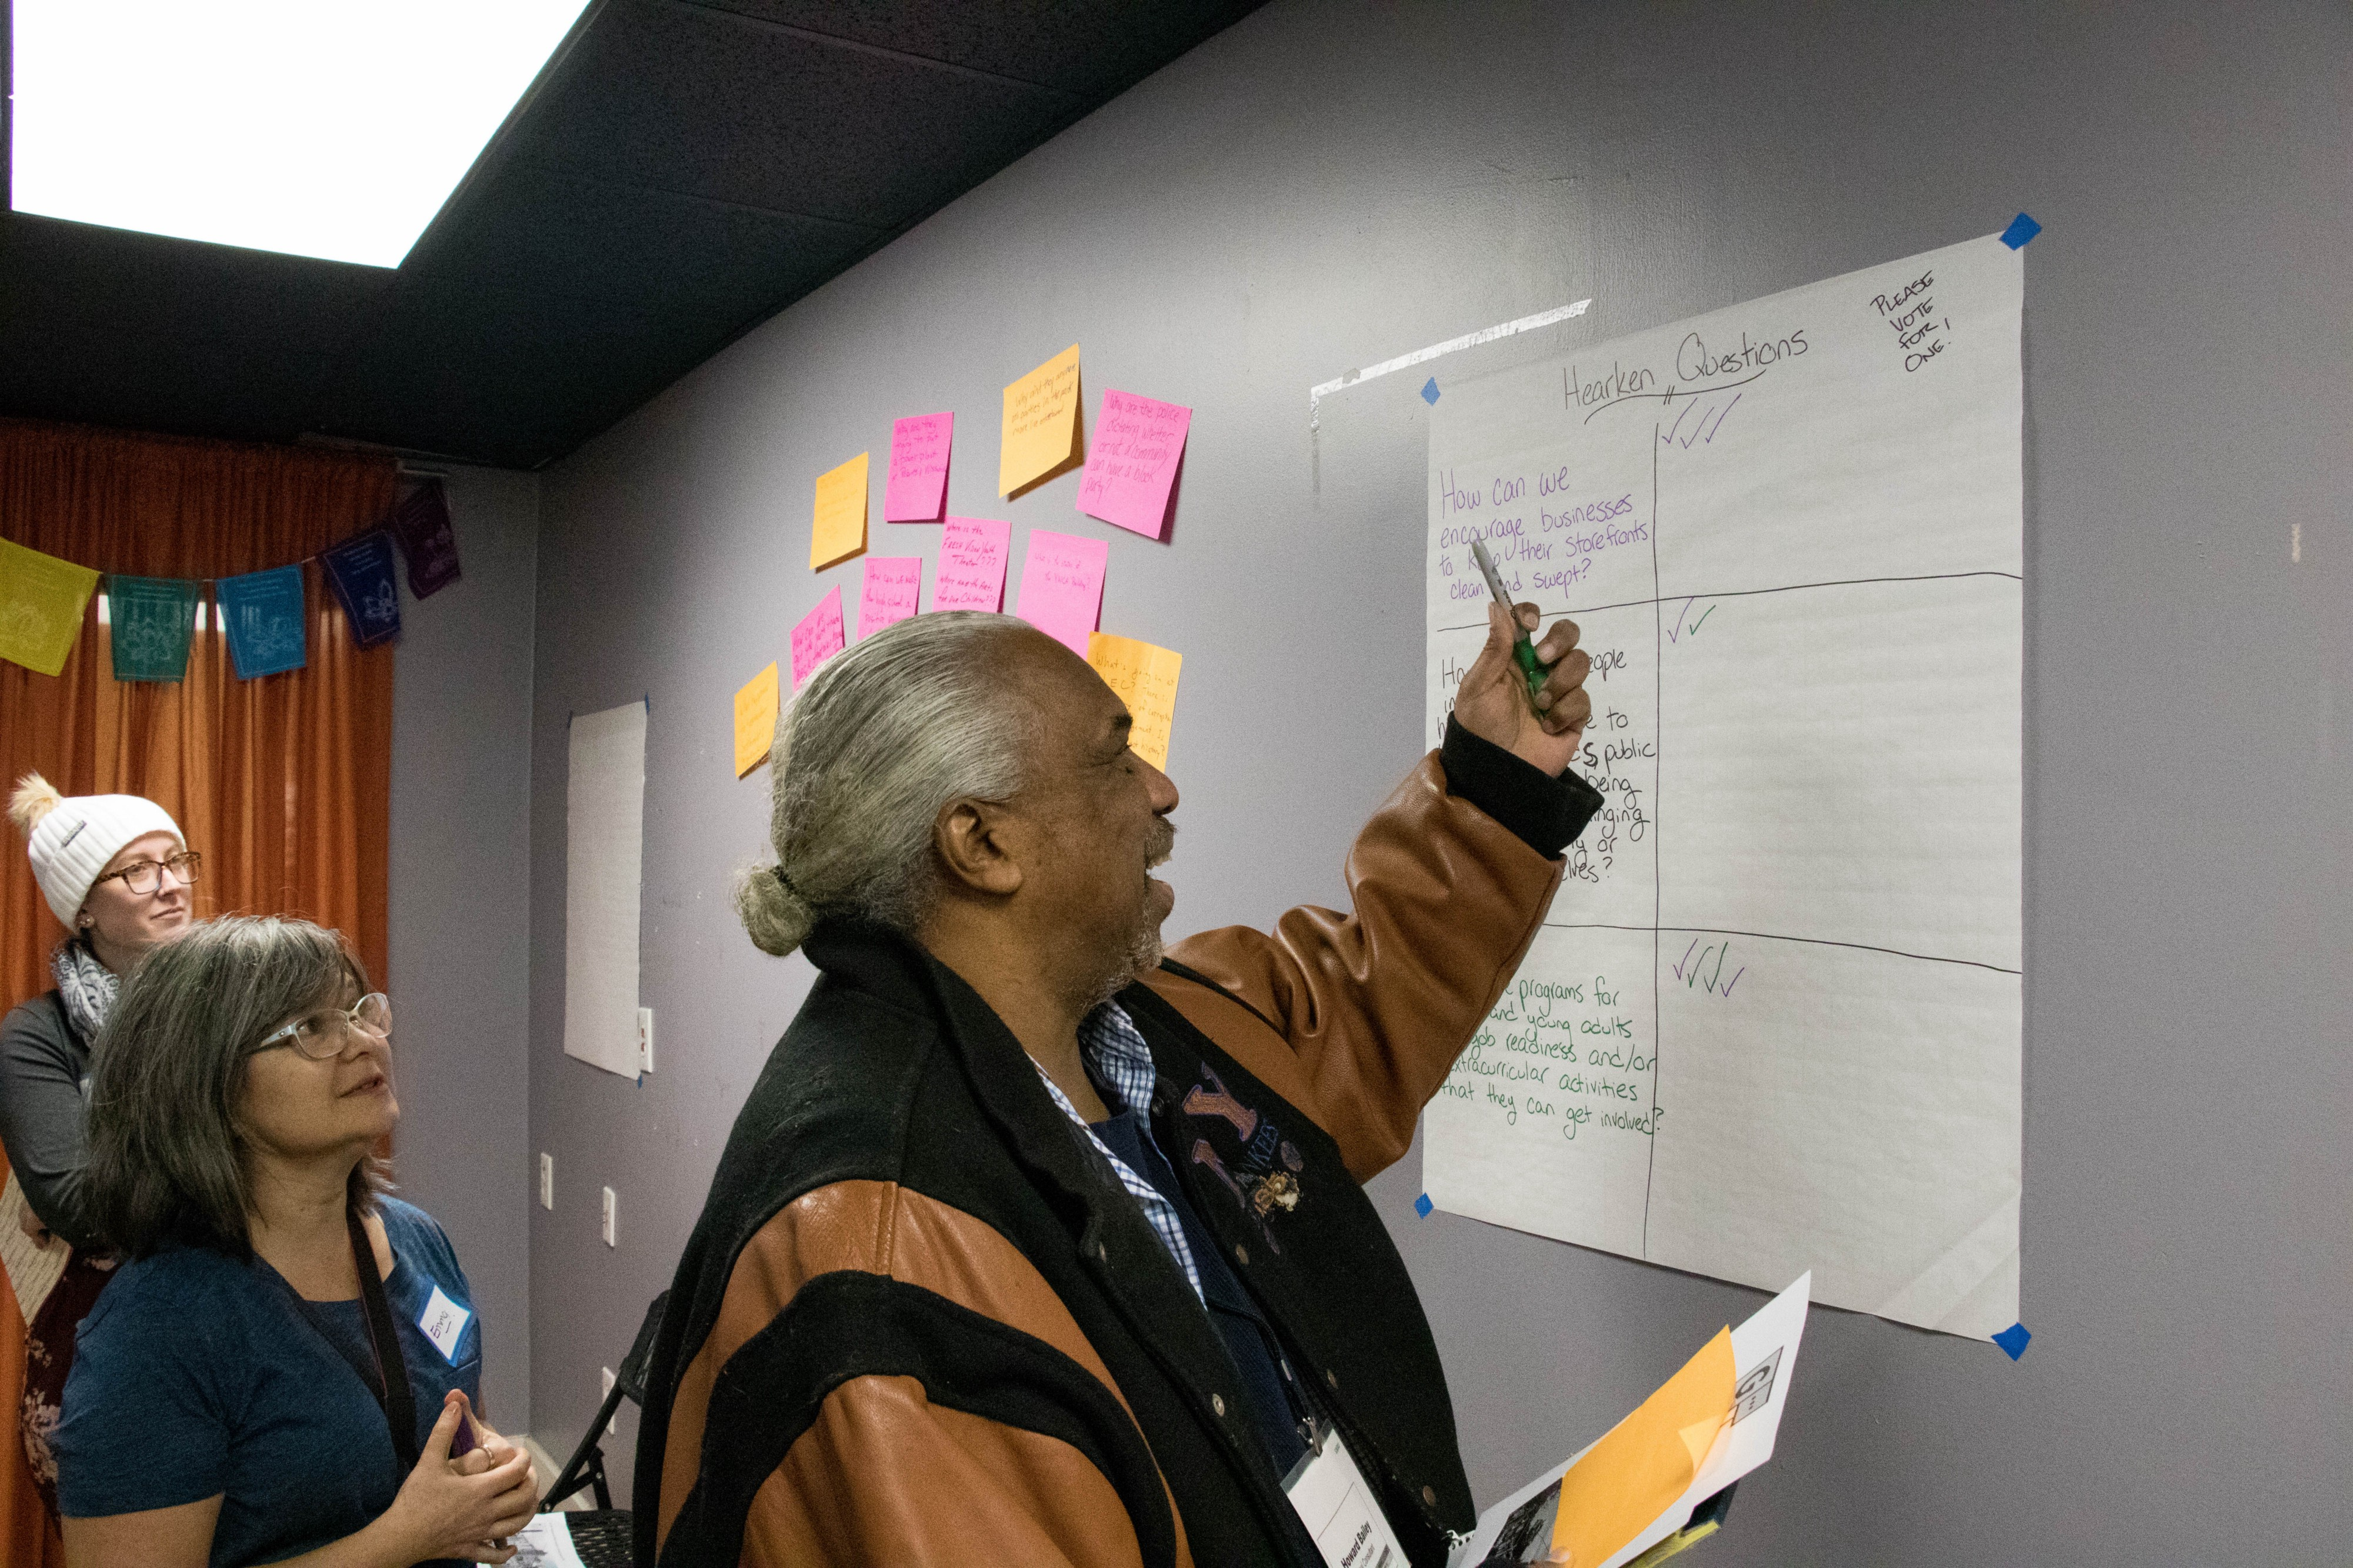 Germantown residents meet with WHYY to discuss local reporting